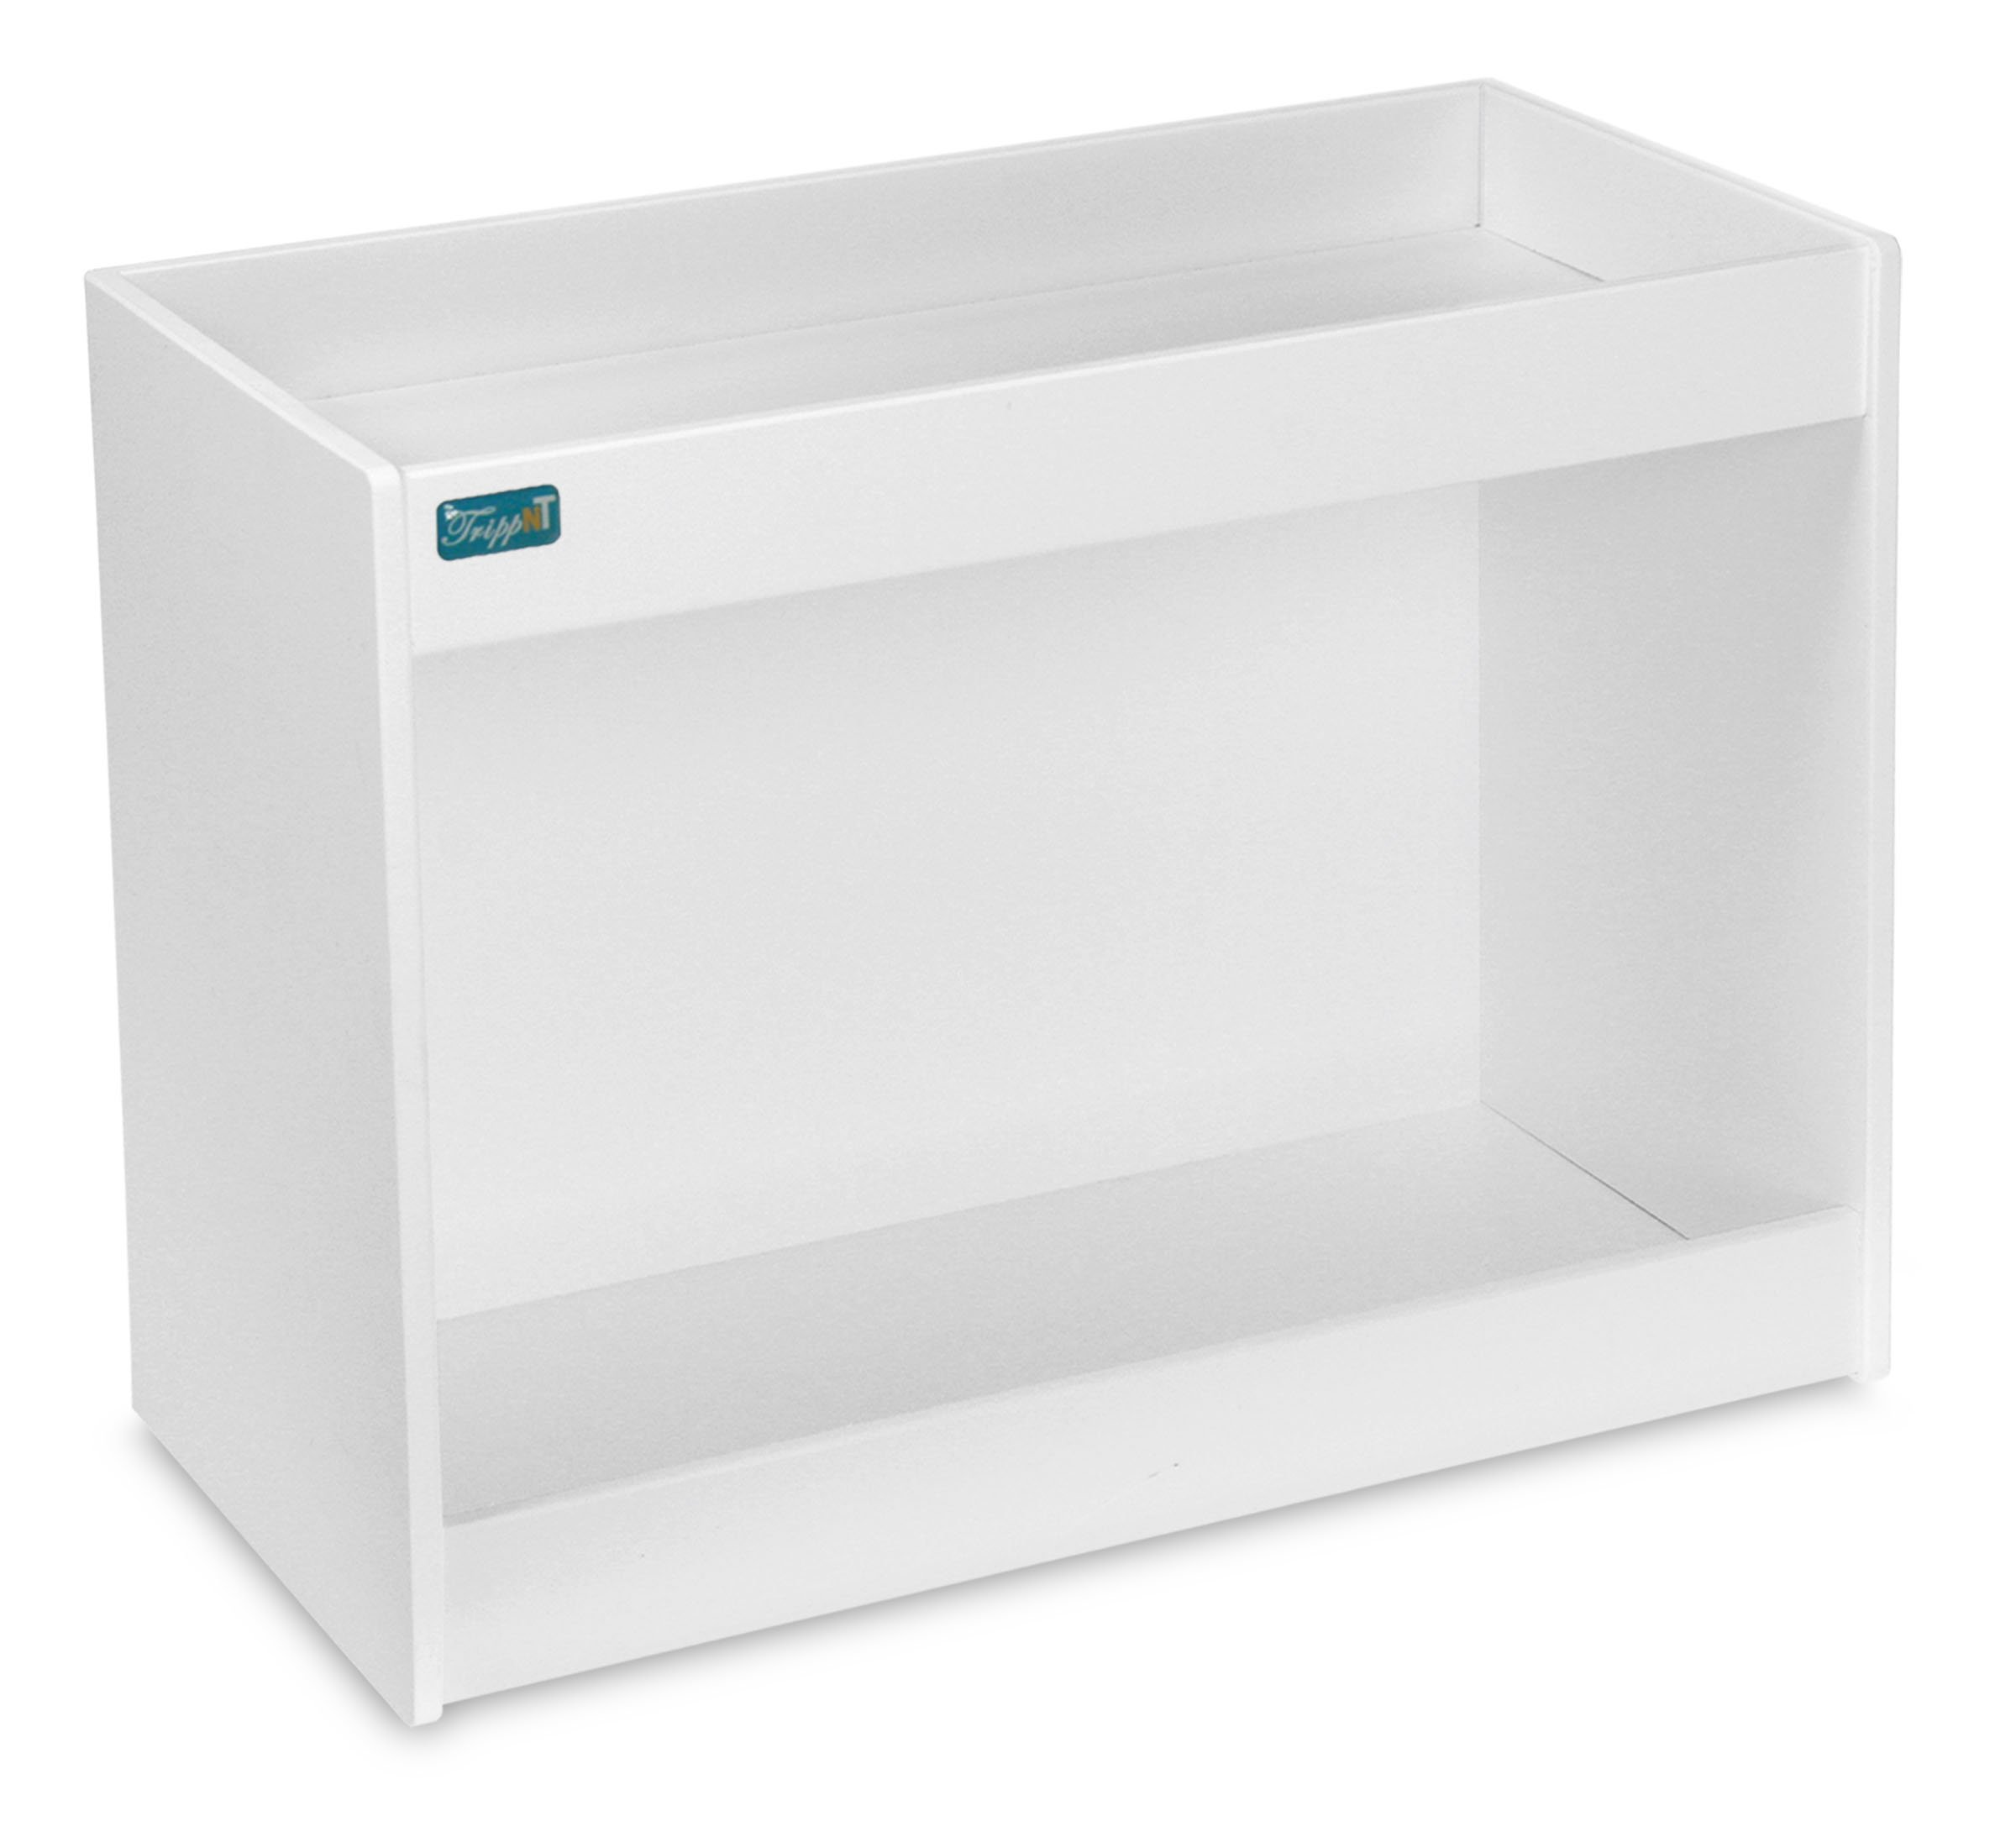 TrippNT 50441 PVC Straight Double Safety Shelves, 12'' Width x 10'' Height x 5'' Depth, White